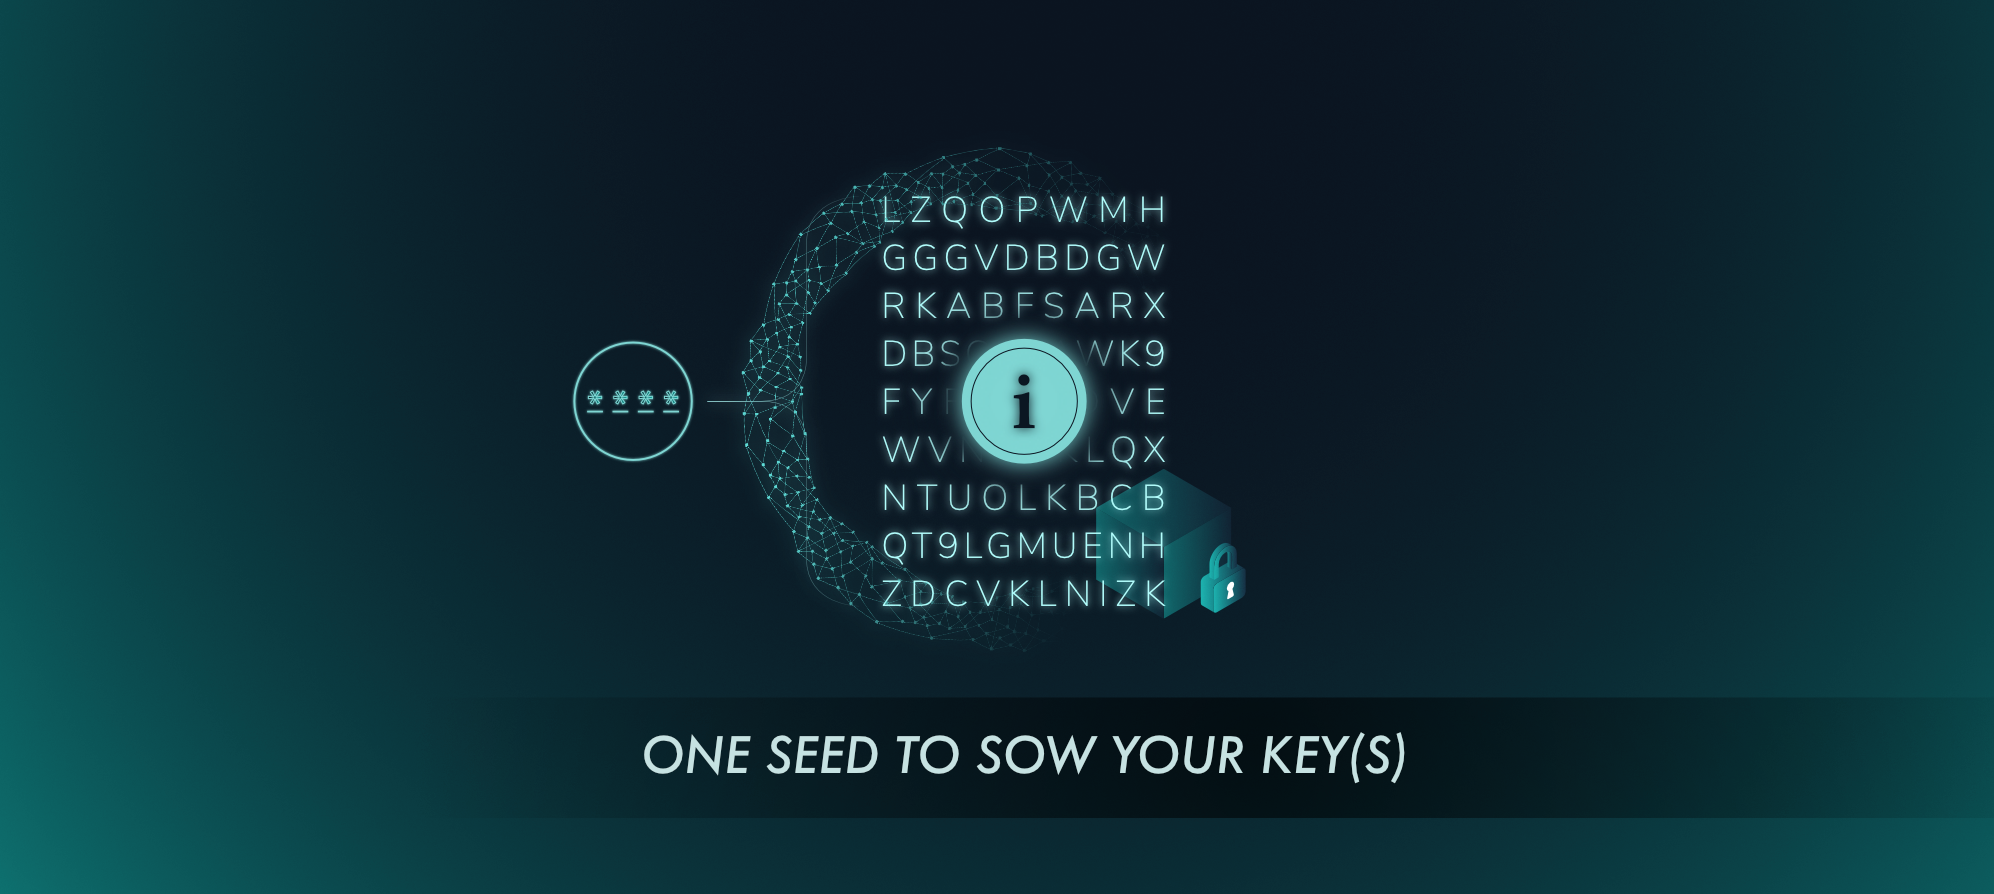 One seed to sow your key(s) - IOTA